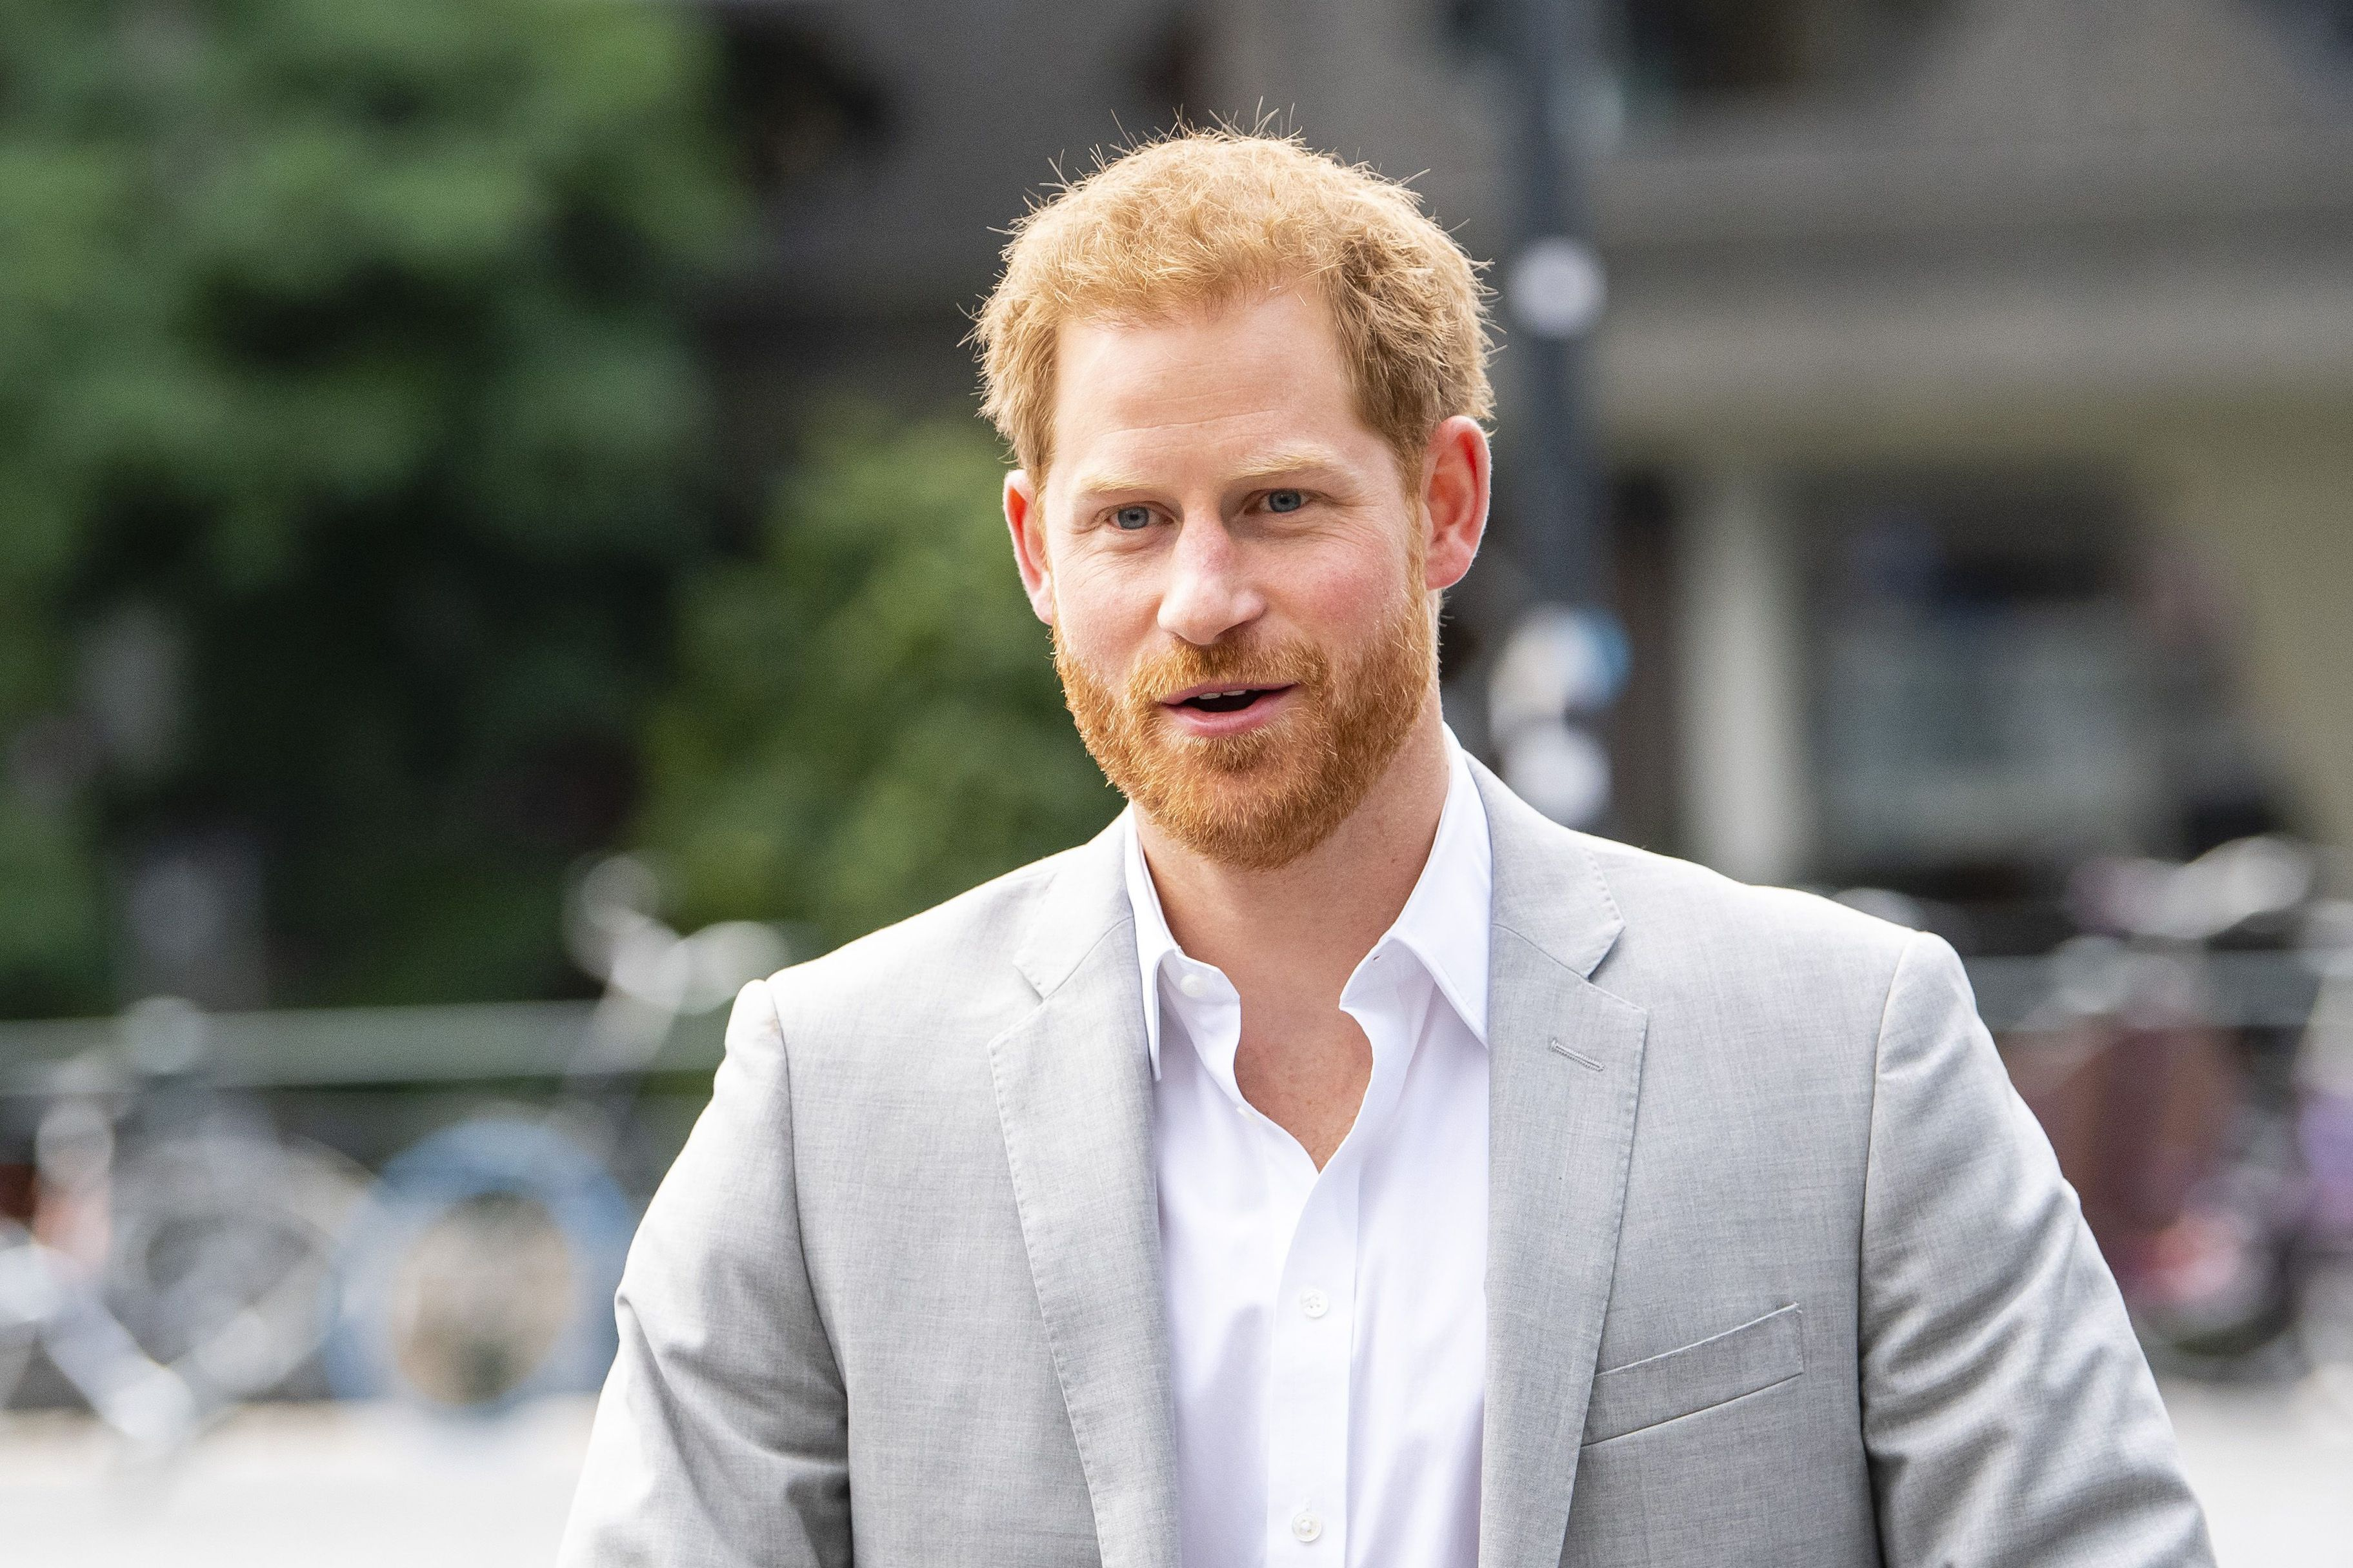 Prince Harry arrives at the ADAM Tower, in Amsterdam, on September 3, 2019, for the introduction of a project and global partnership between Booking.com, SkyScanner, CTrip, TripAdvisor and Visa, an initiative led by the Duke of Sussex to change the travel industry to better protect tourist destinations and communities that depend on it. (Photo by Frank van Beek / ANP / AFP) / Netherlands OUT        (Photo credit should read FRANK VAN BEEK/AFP/Getty Images)